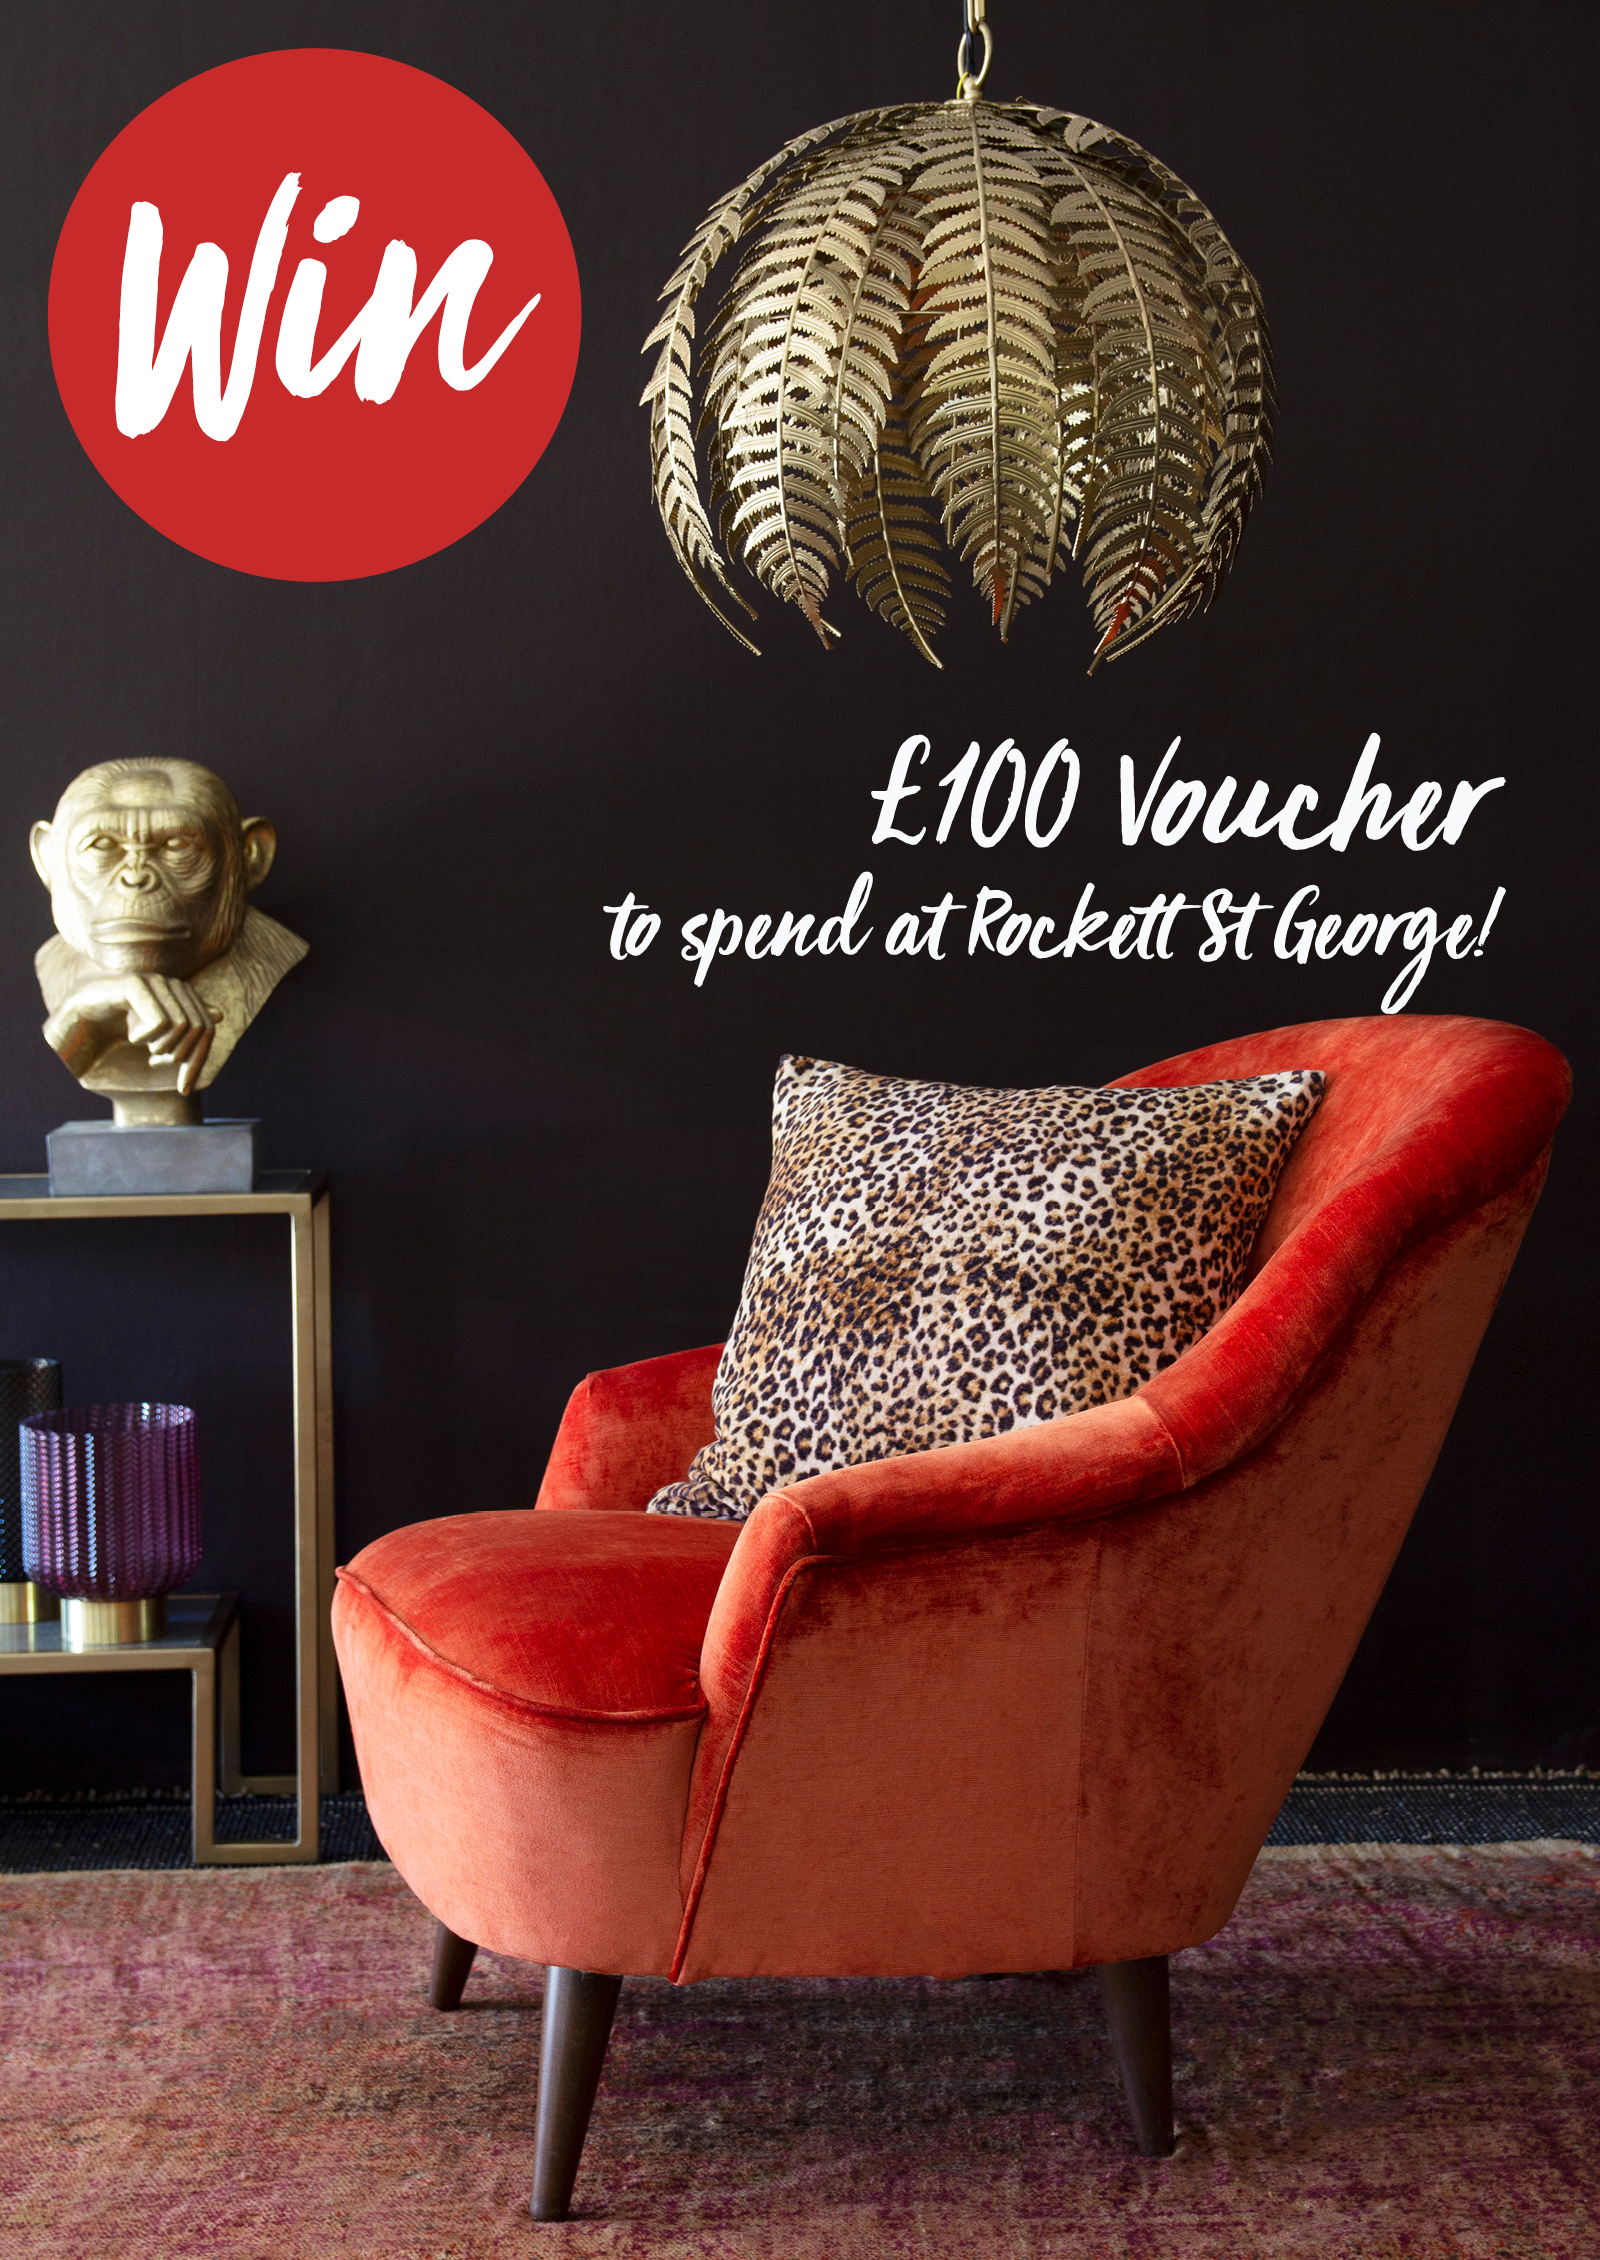 LIV for Interiors / Competition: Win £100 to spend at Rockett St. George